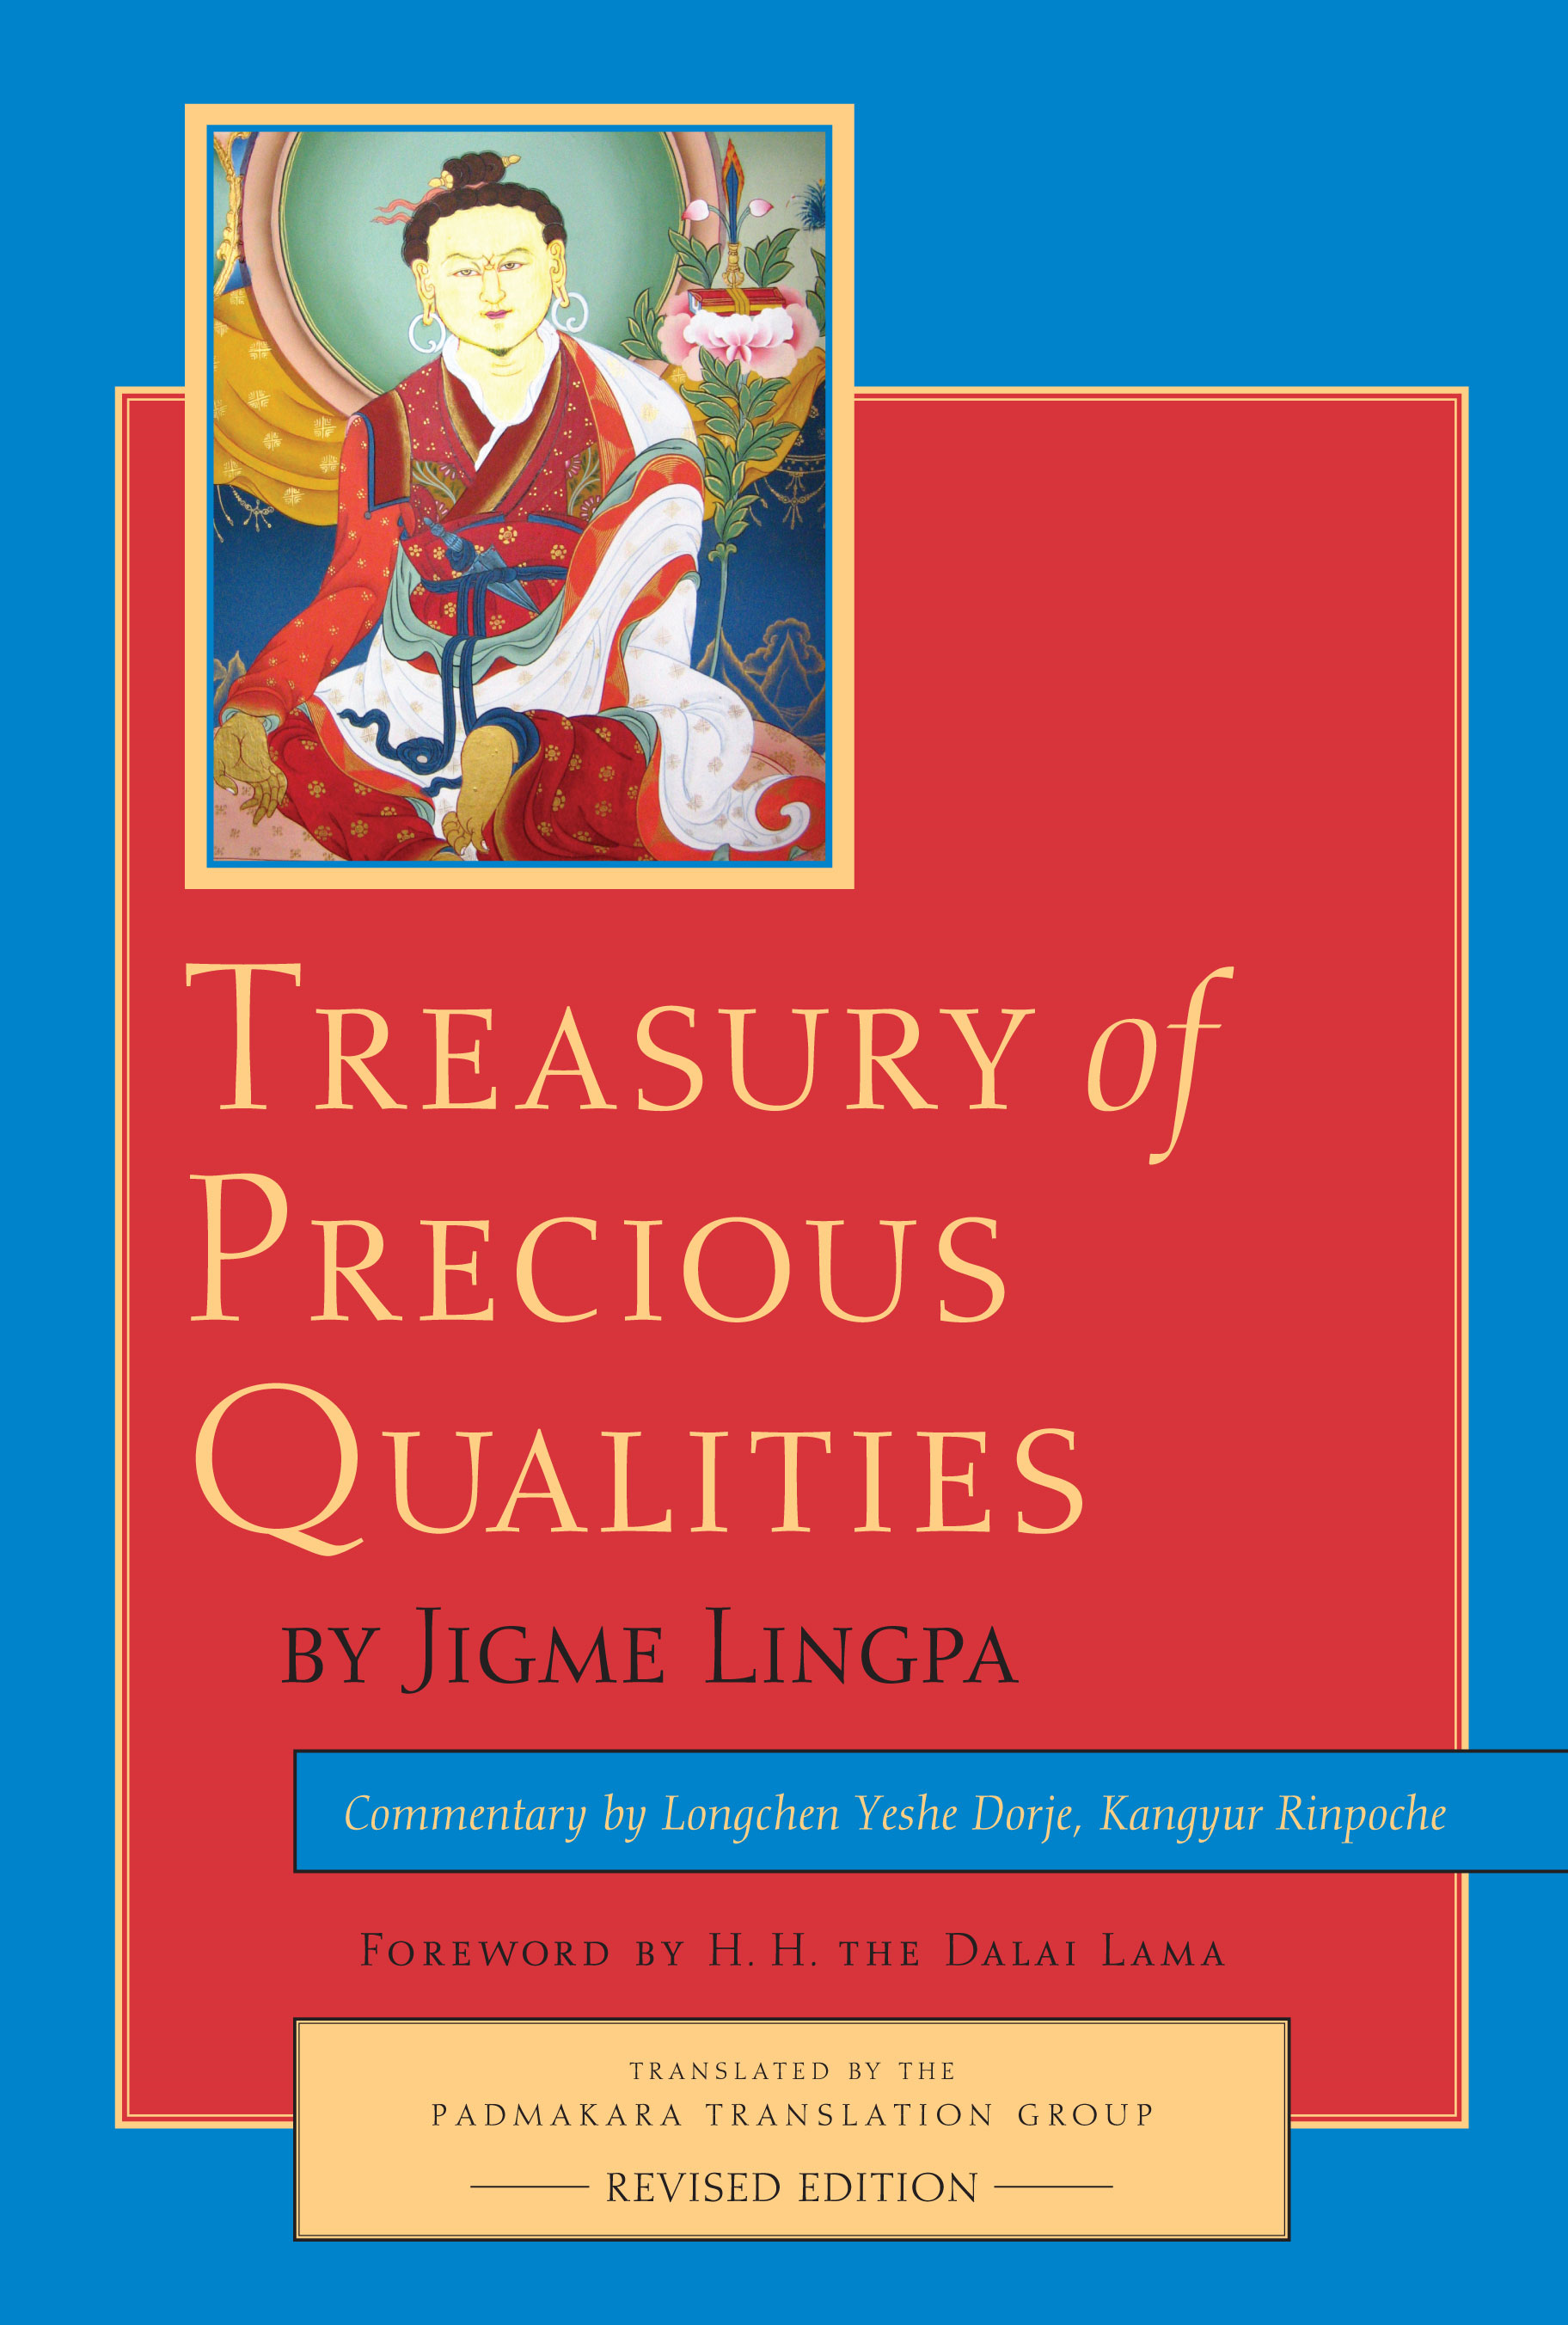 Treasury of Precious Qualities: Revised edition By: Jigme Lingpa,Longchen Yeshe Dorje, Kyabje Kangyur Rinpoche